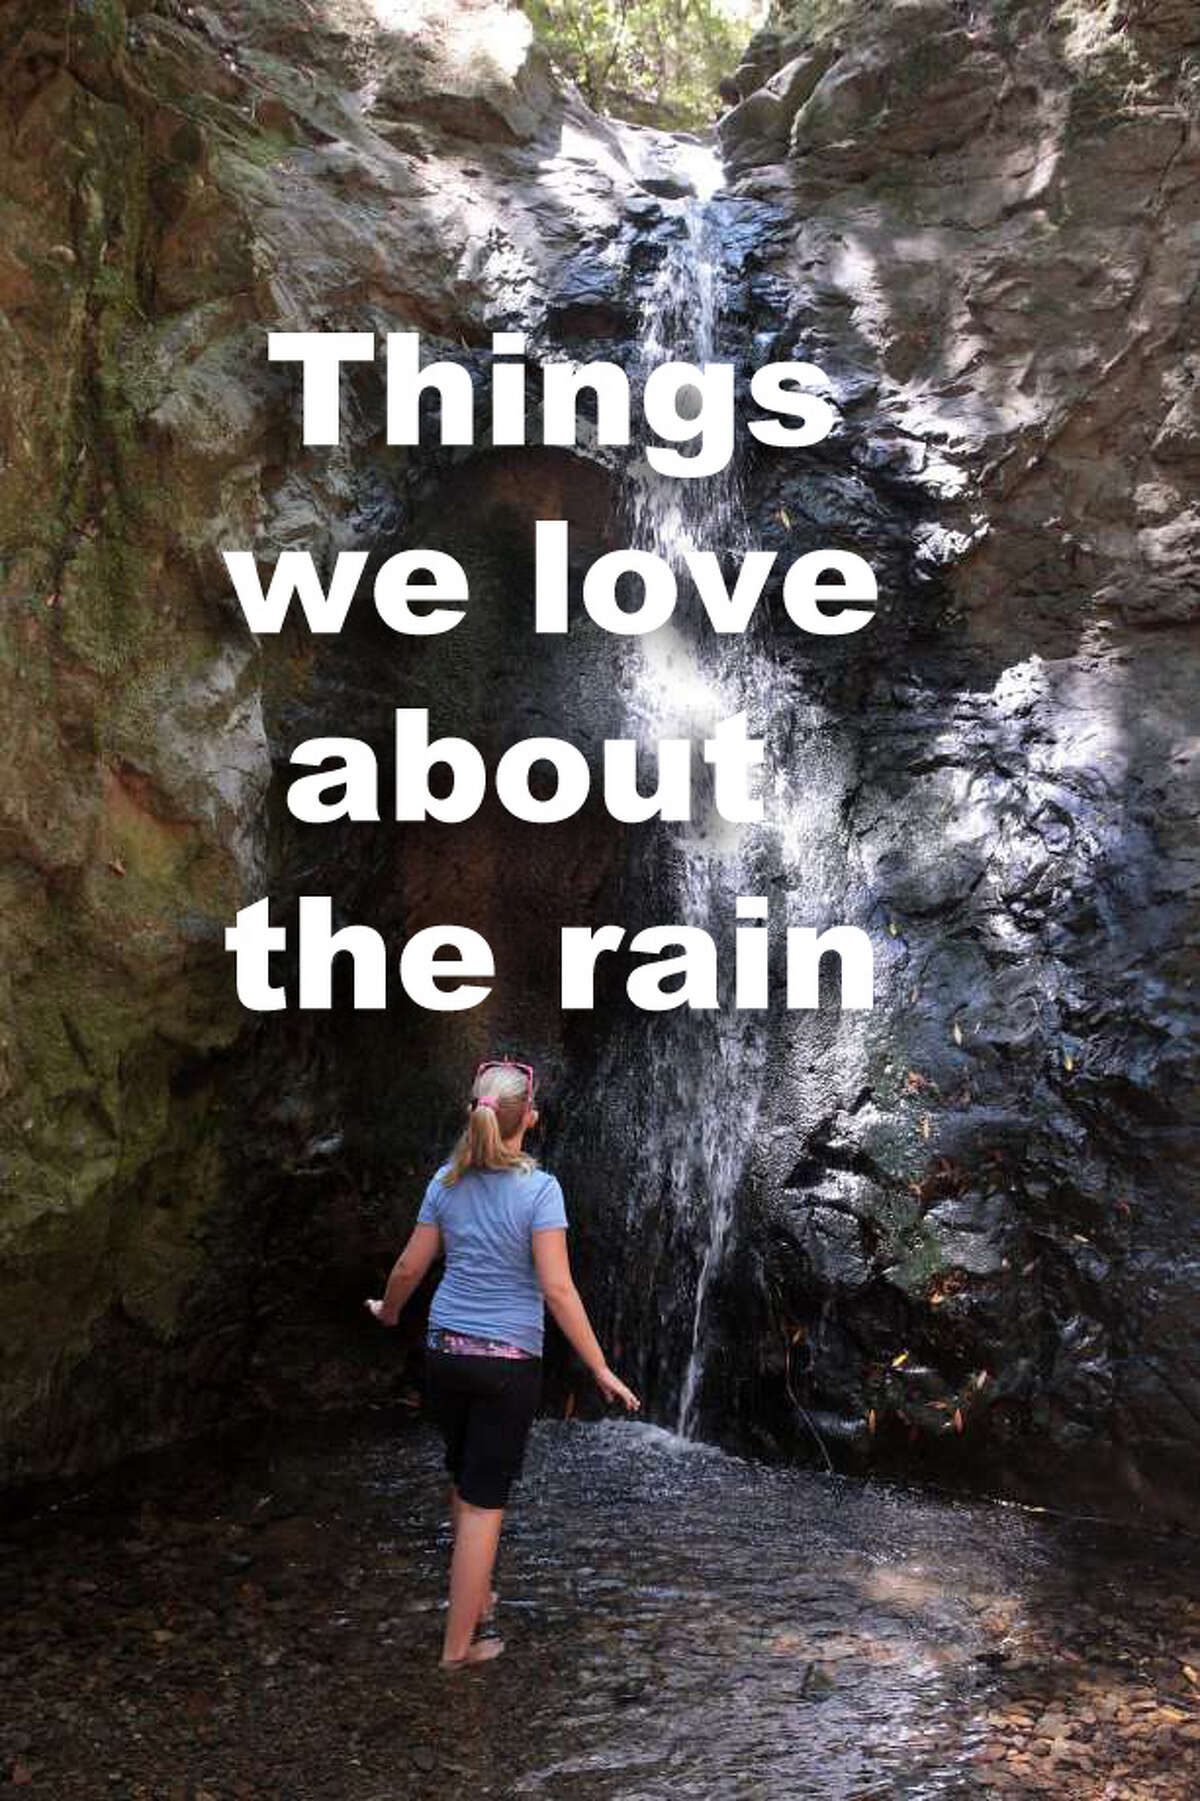 Things we love about the rain.